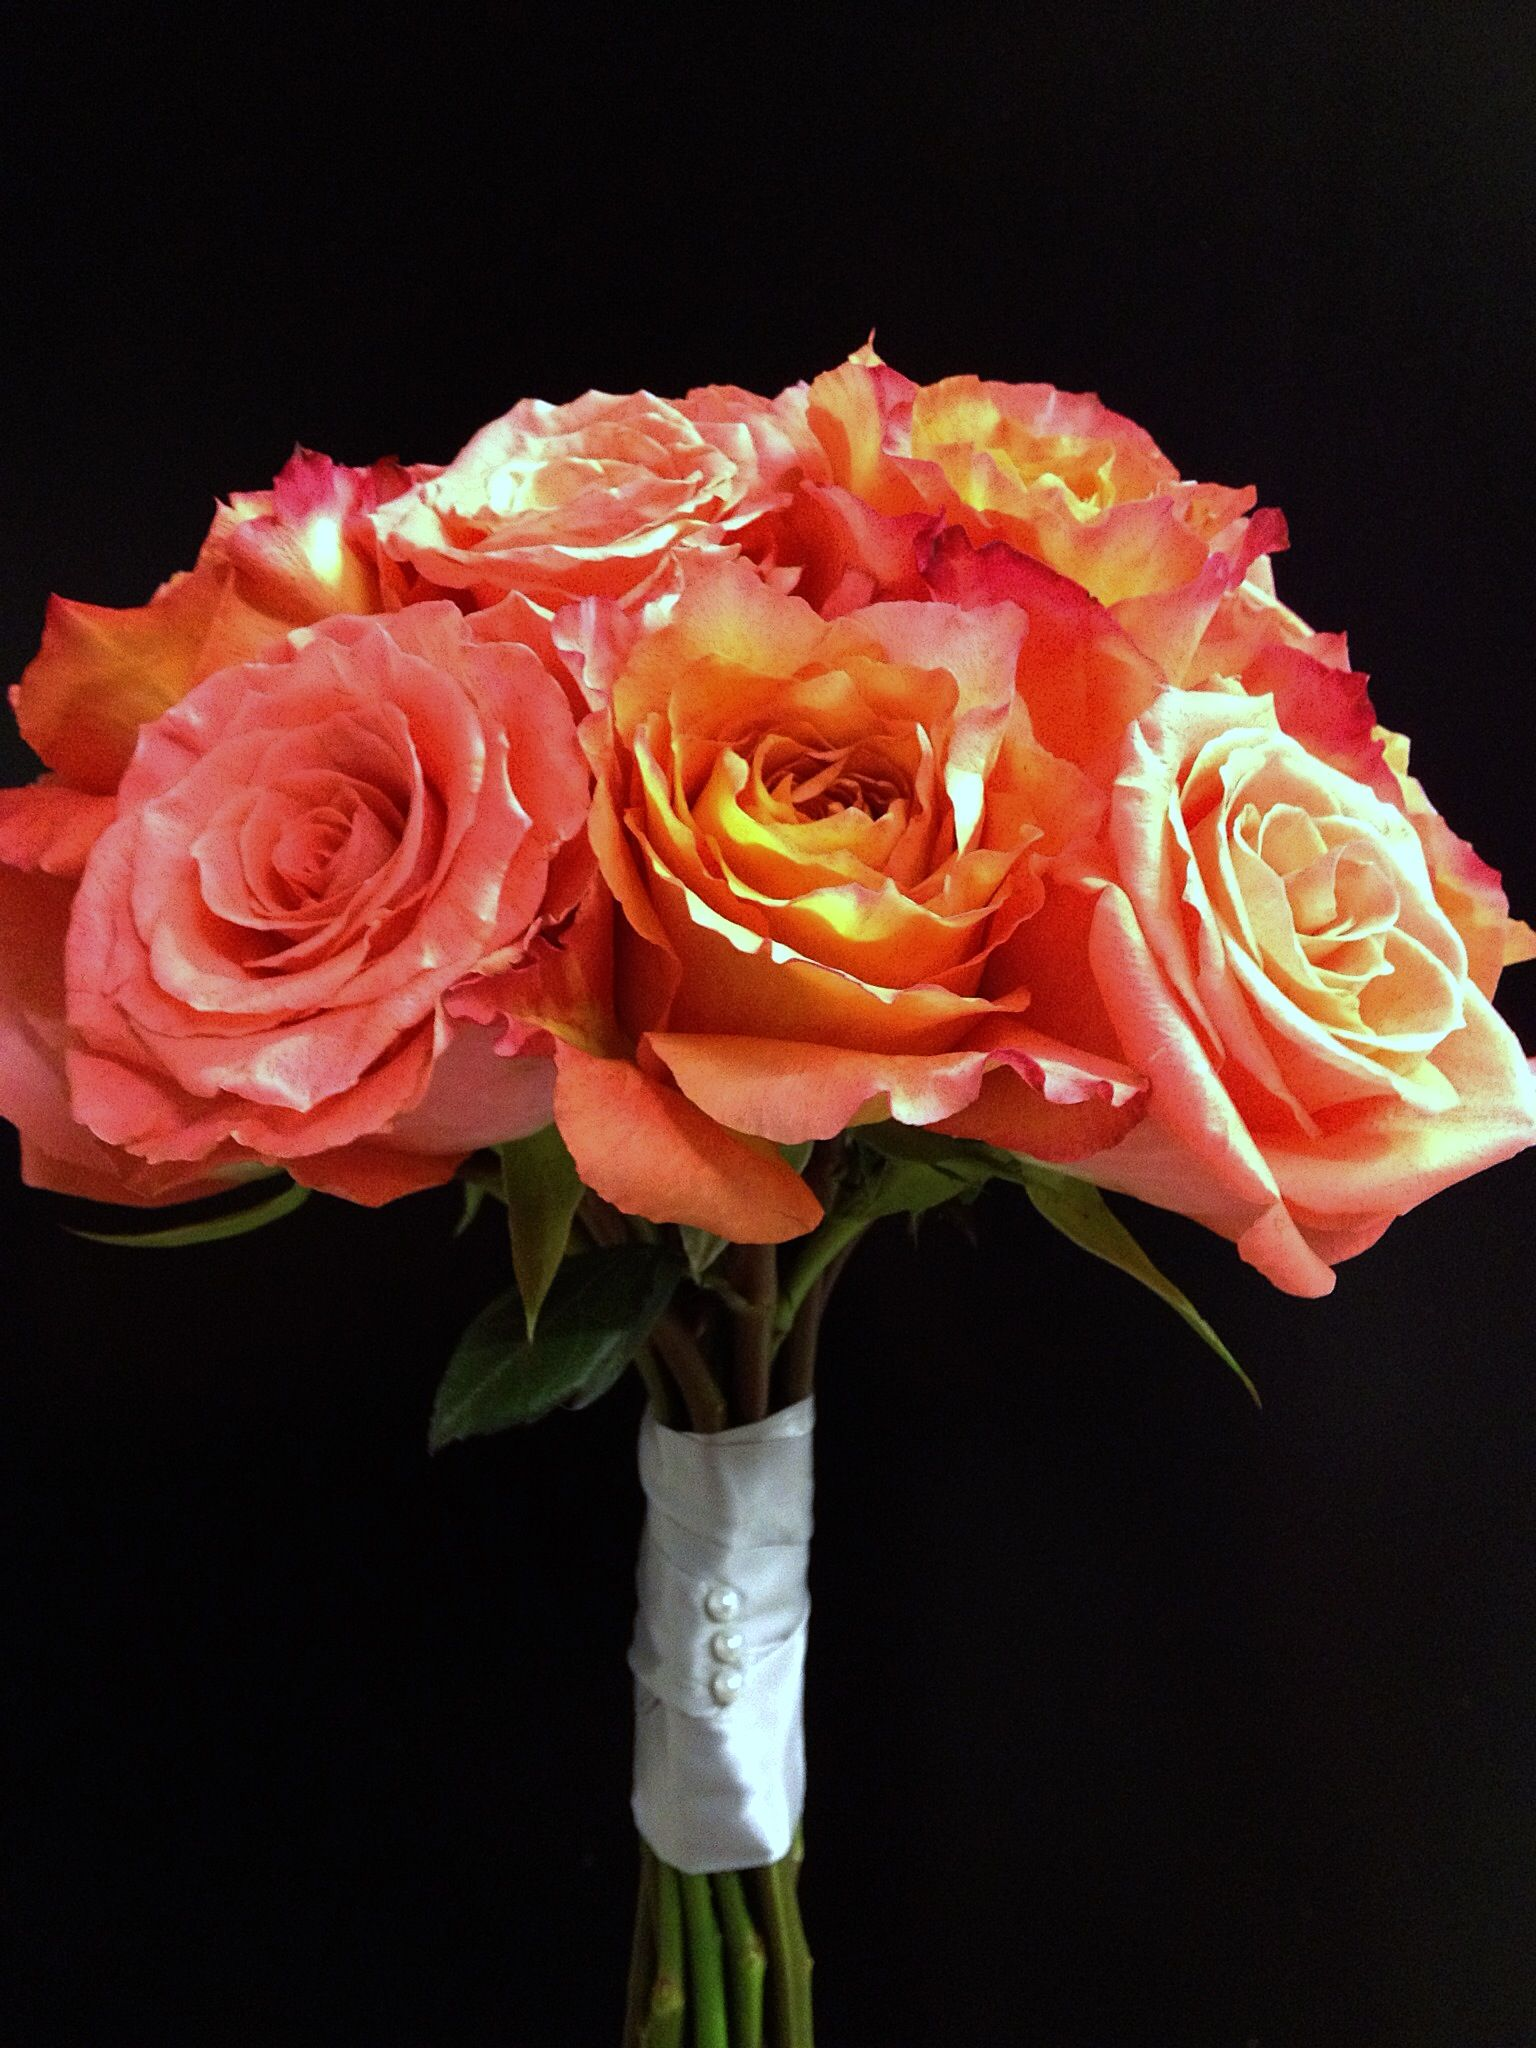 Amsterdam and Free Spirit Rose Bouquet. Jenny flowers